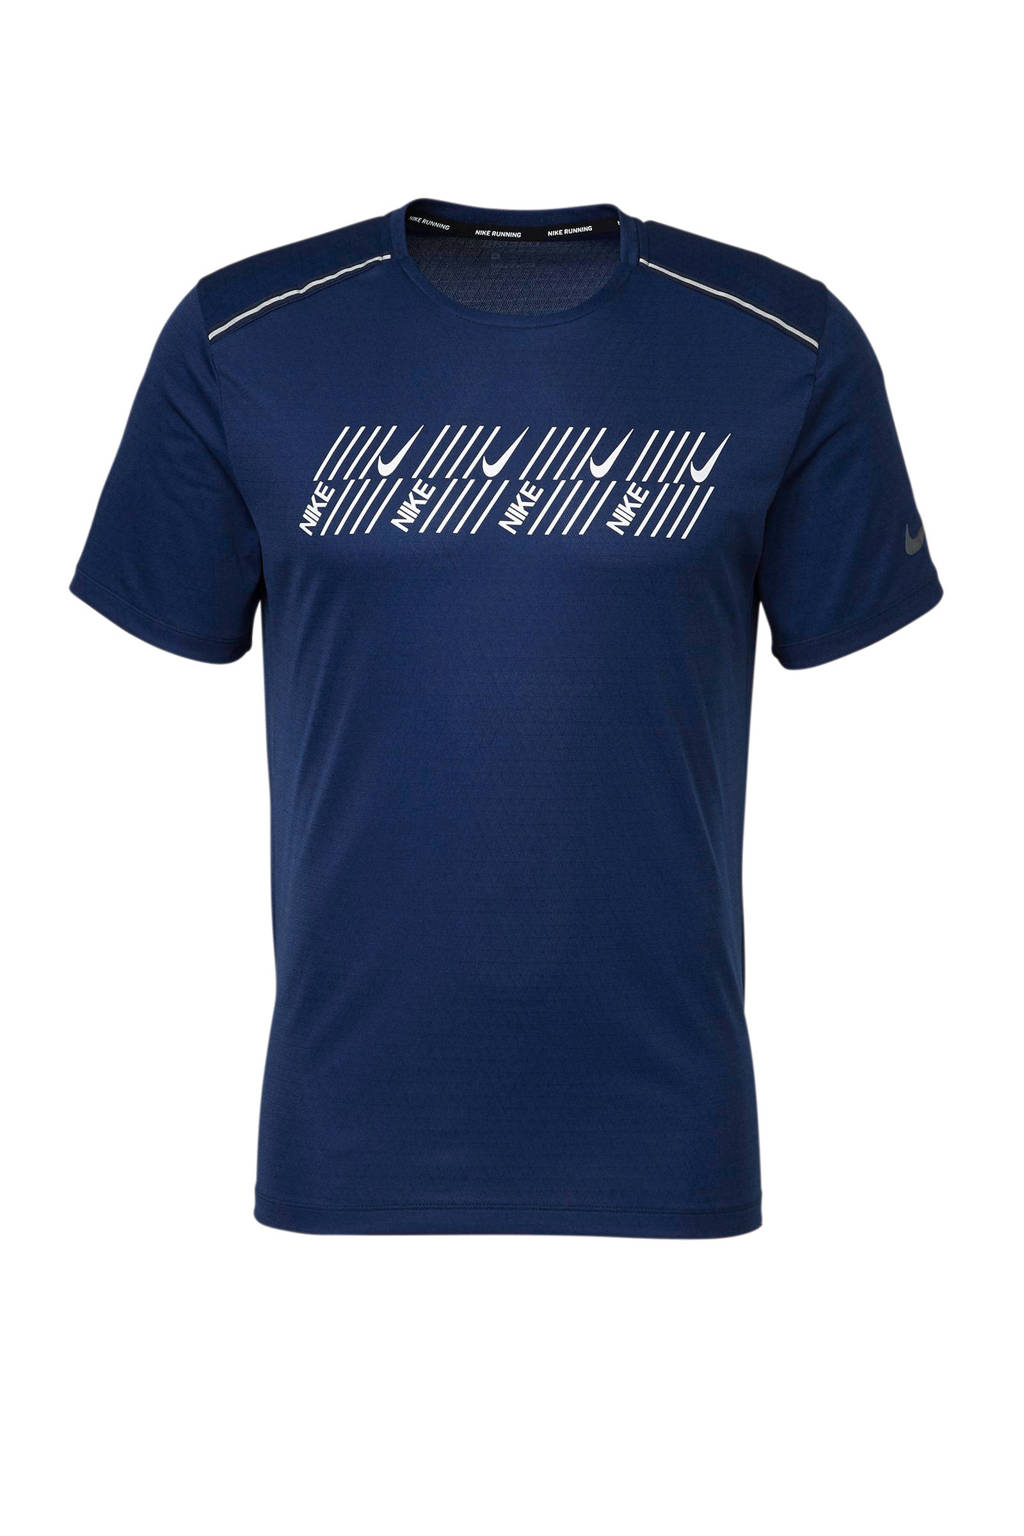 Nike   harloop T-shirt, Donkerblauw/wit